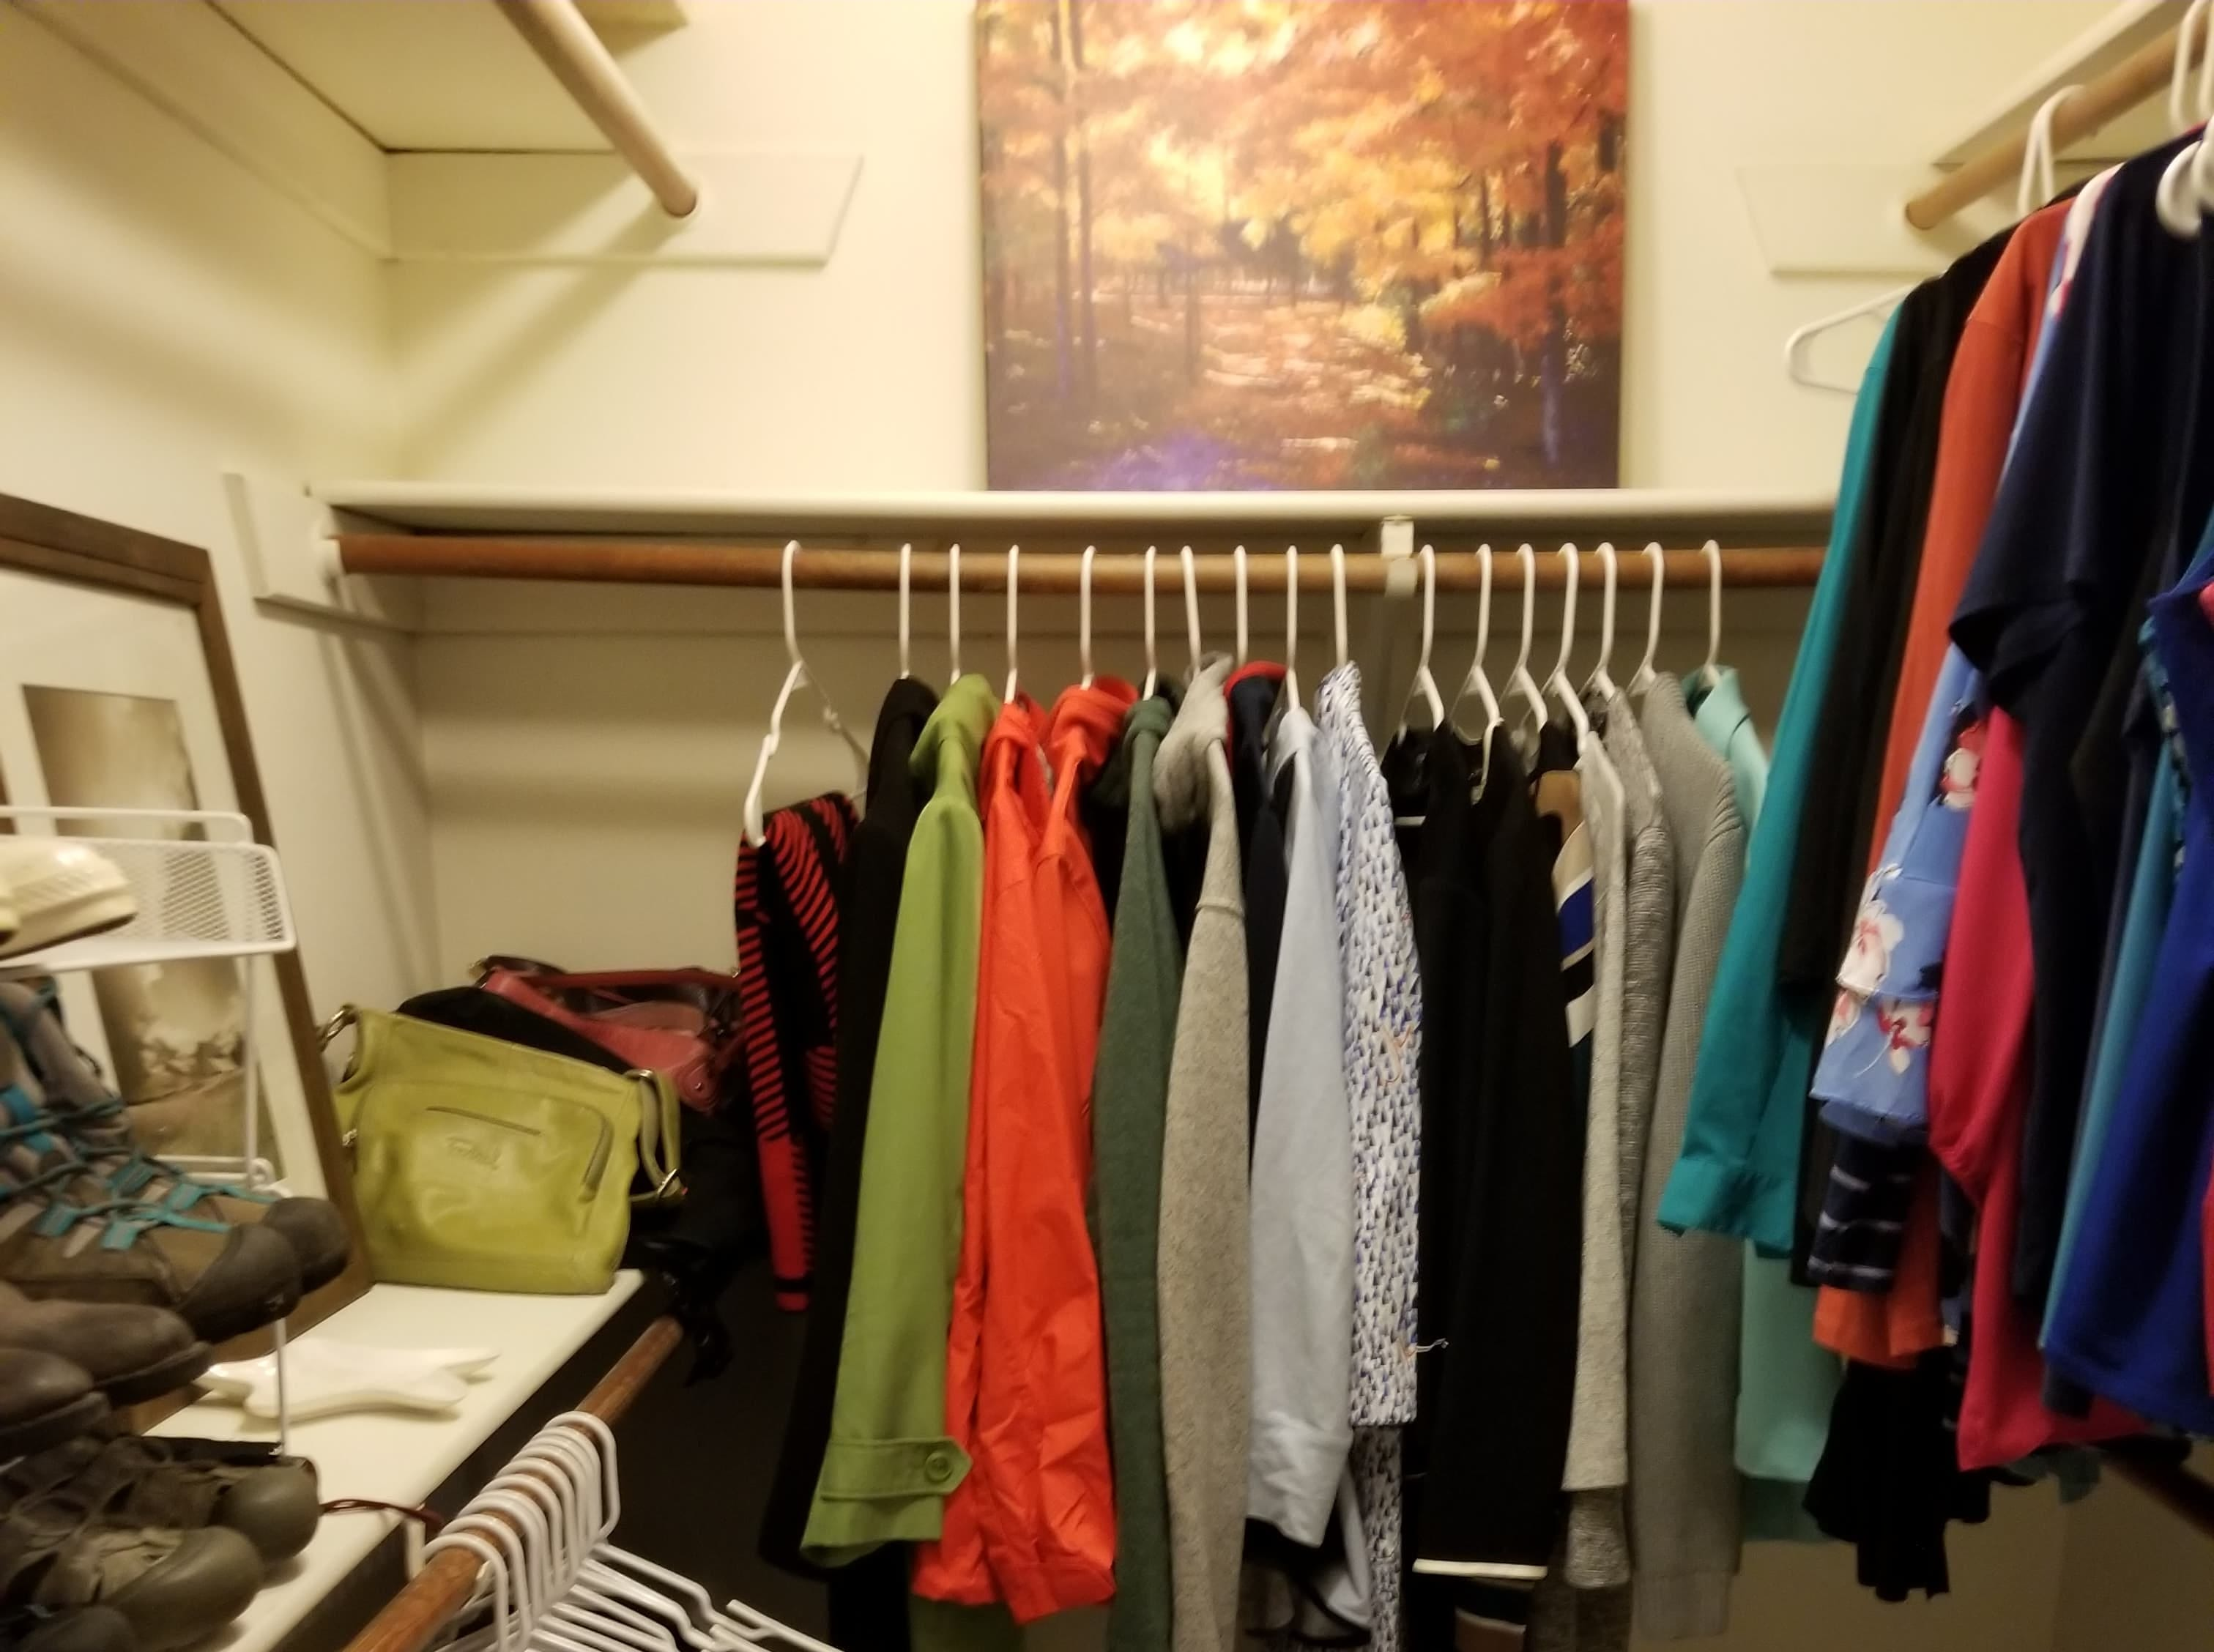 (After) Beth Dorsett of West Des Moines organized her closet based off Marie Kondo's KonMari method.